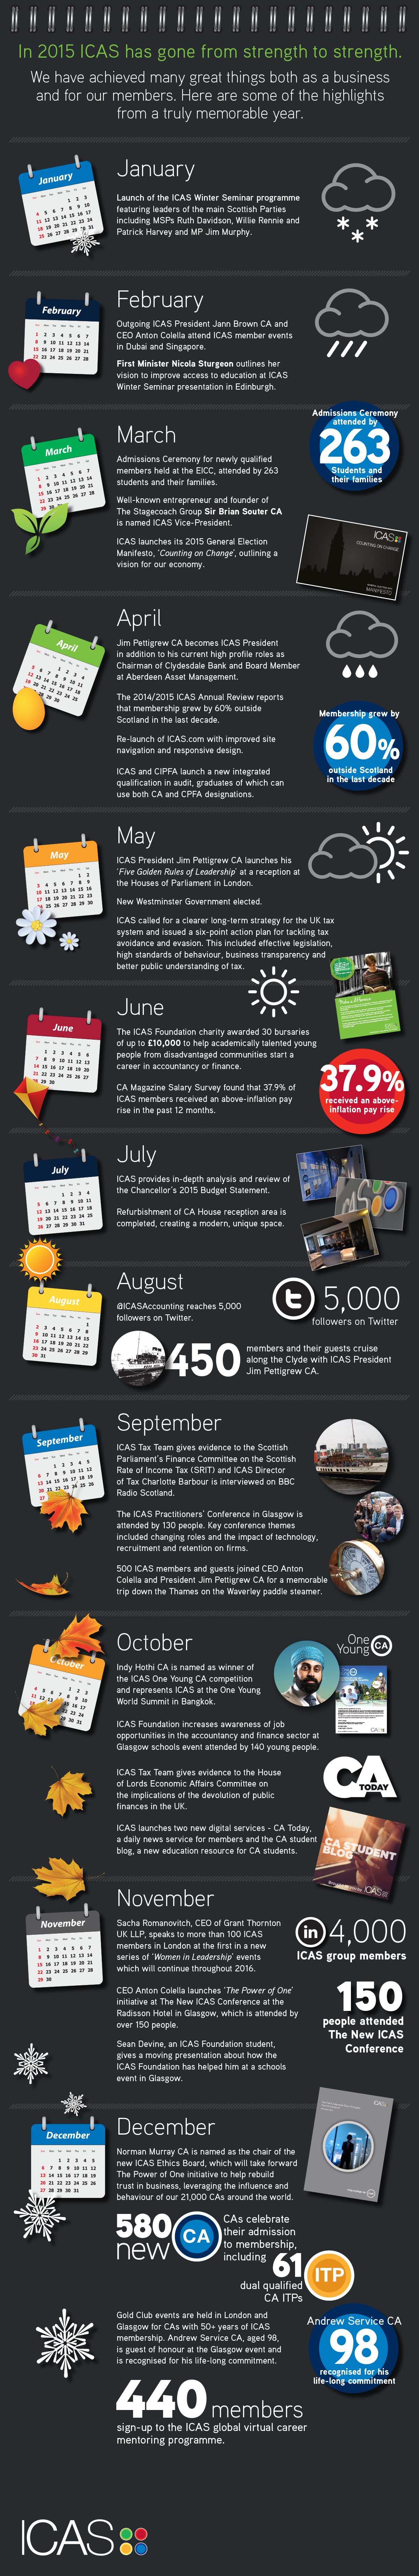 ICAS Year End Infographic